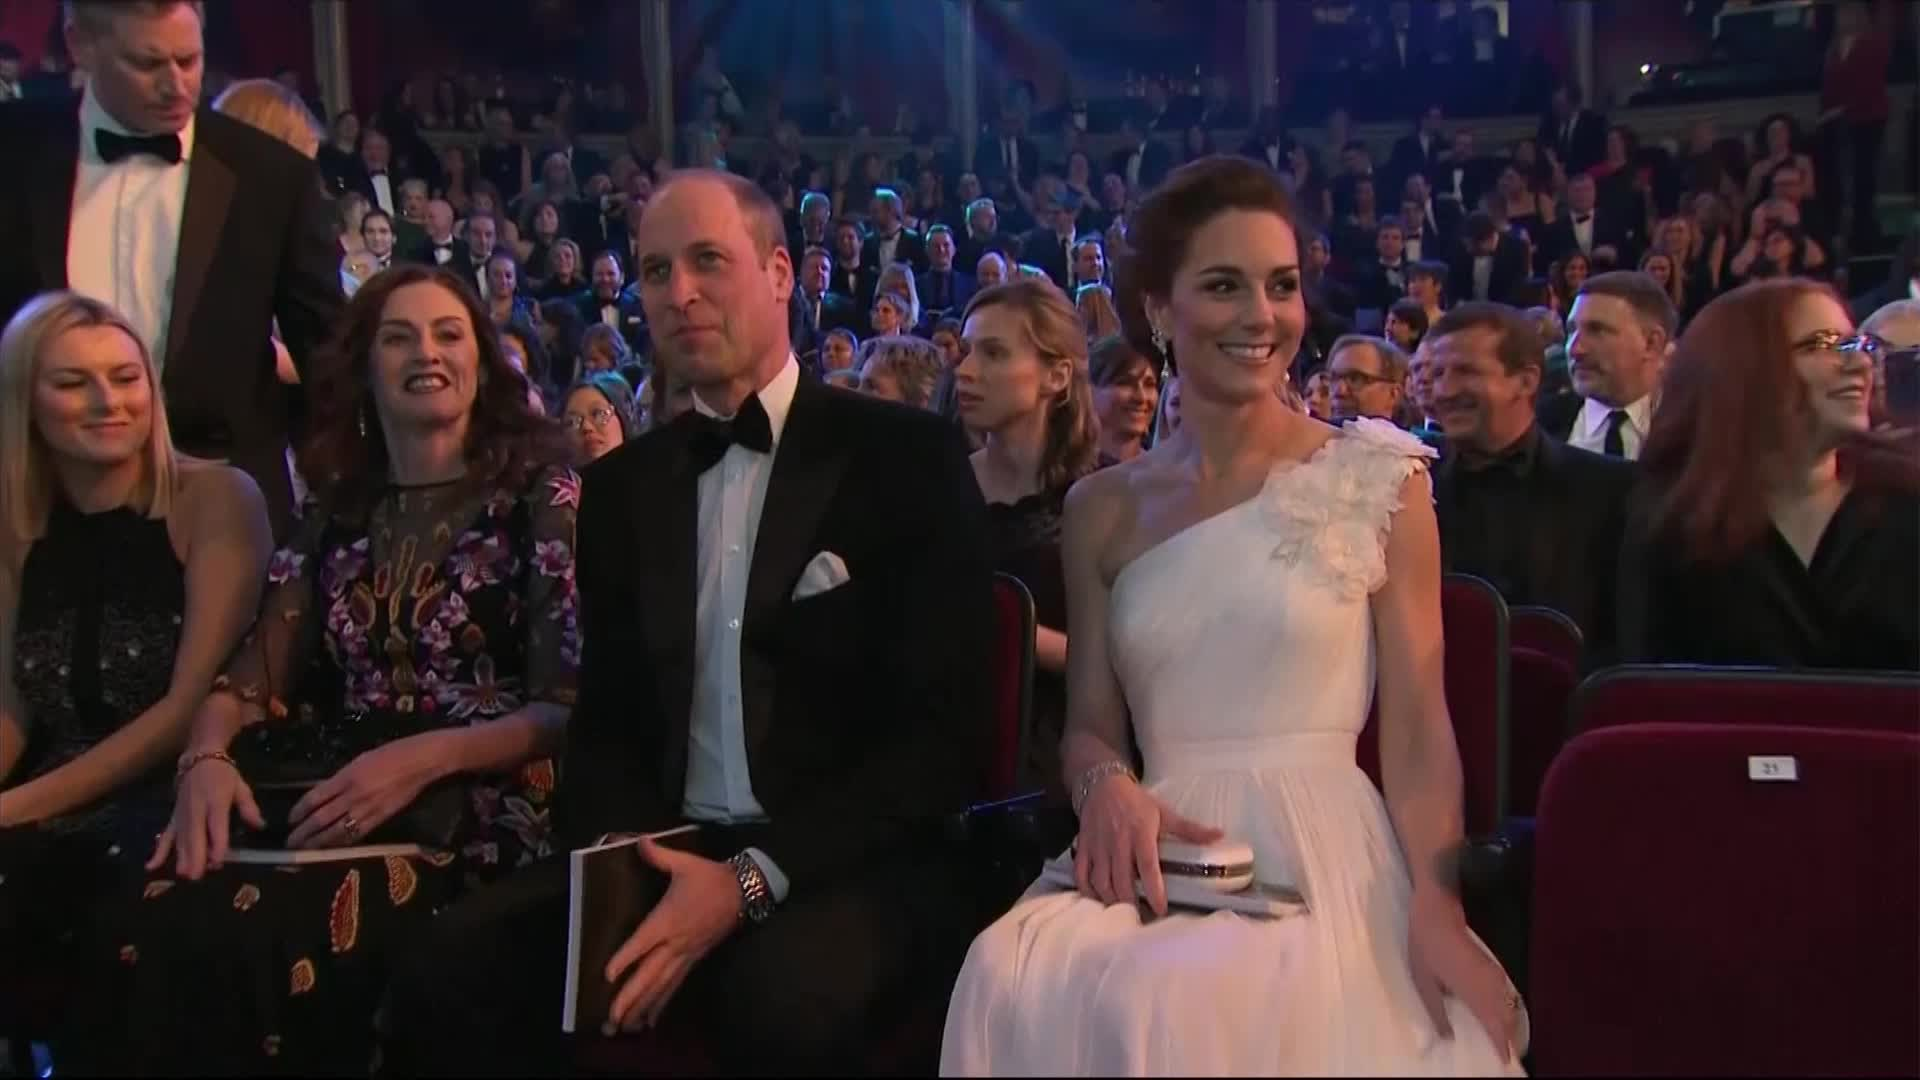 Prince William and Kate Middleton had the most awkward entrance at the BAFTAs